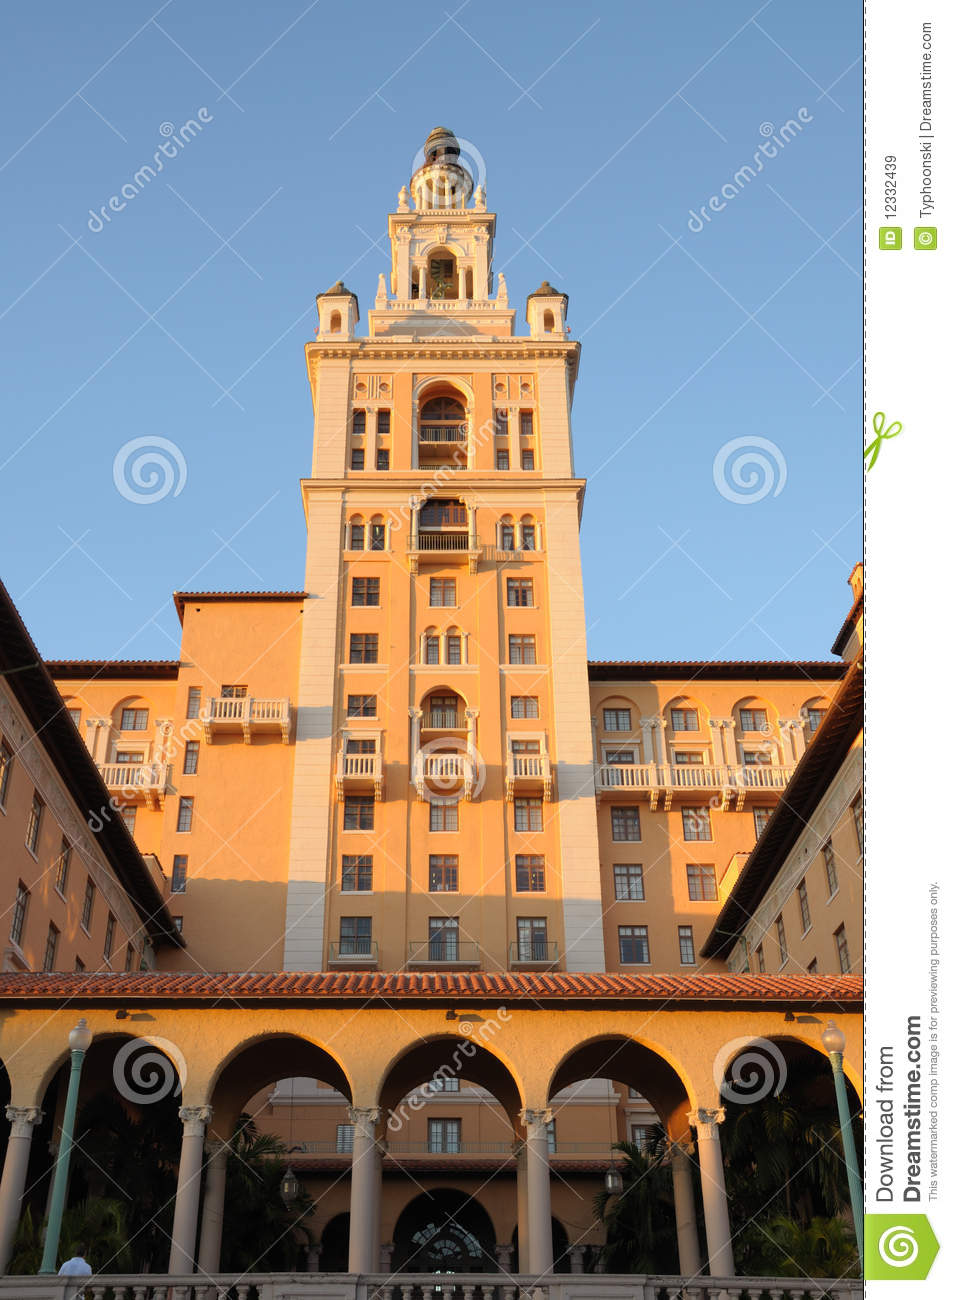 Historic Biltmore Hotel Miami Royalty Free Stock Images